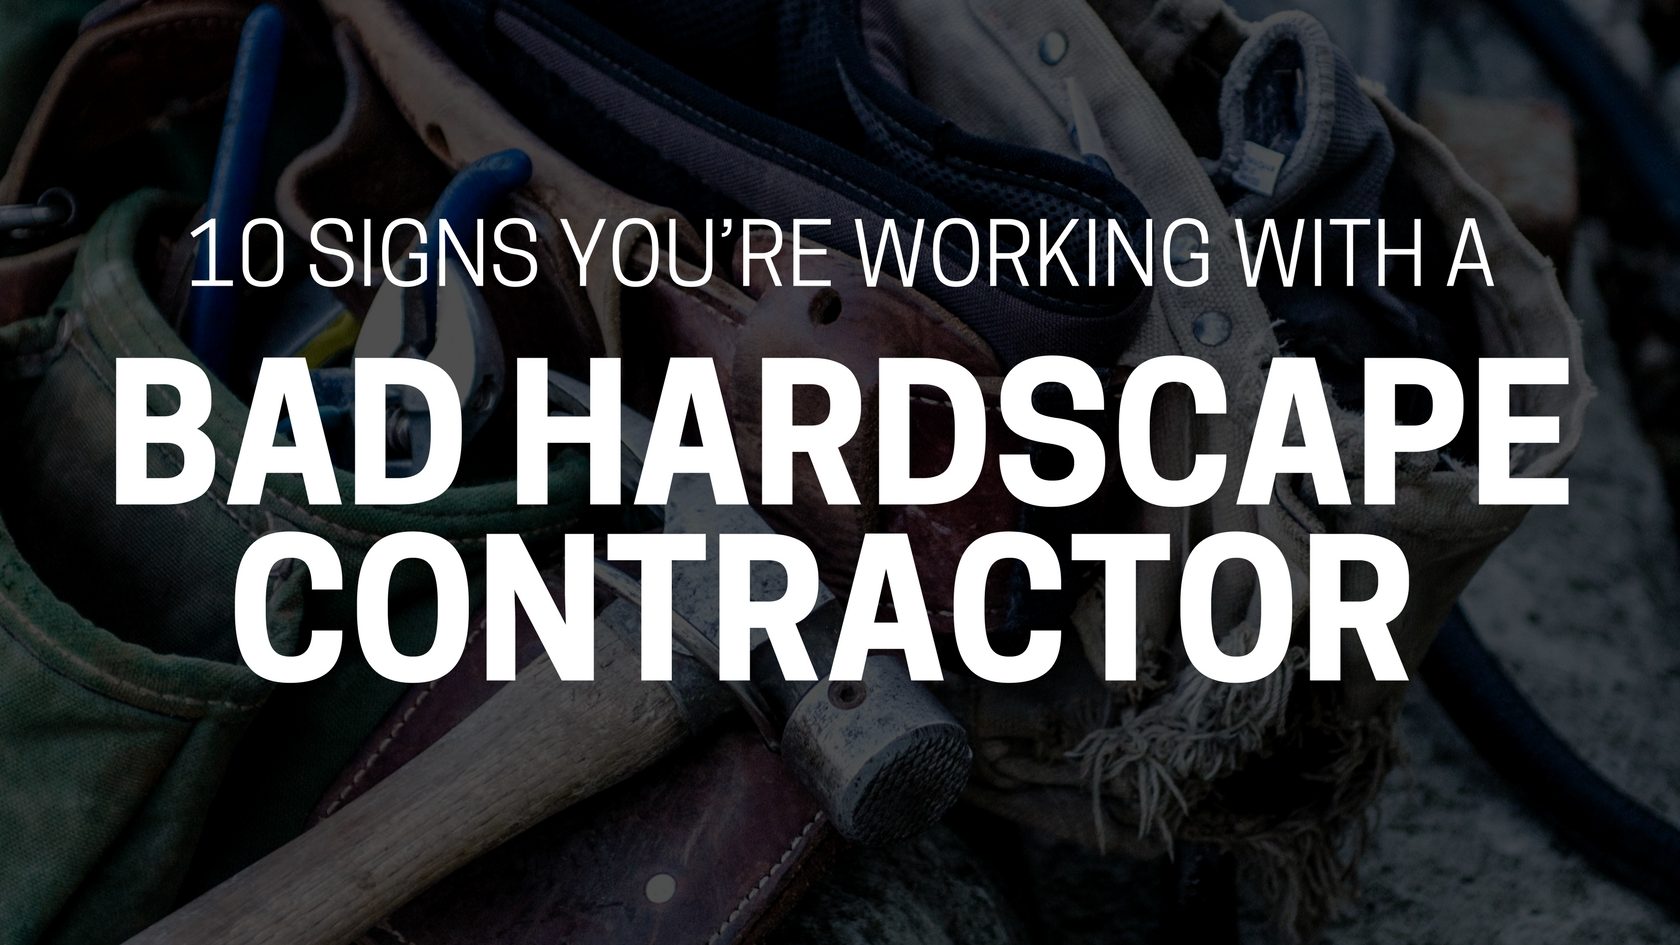 10 Signs You're Working With A Bad Hardscape Contractor